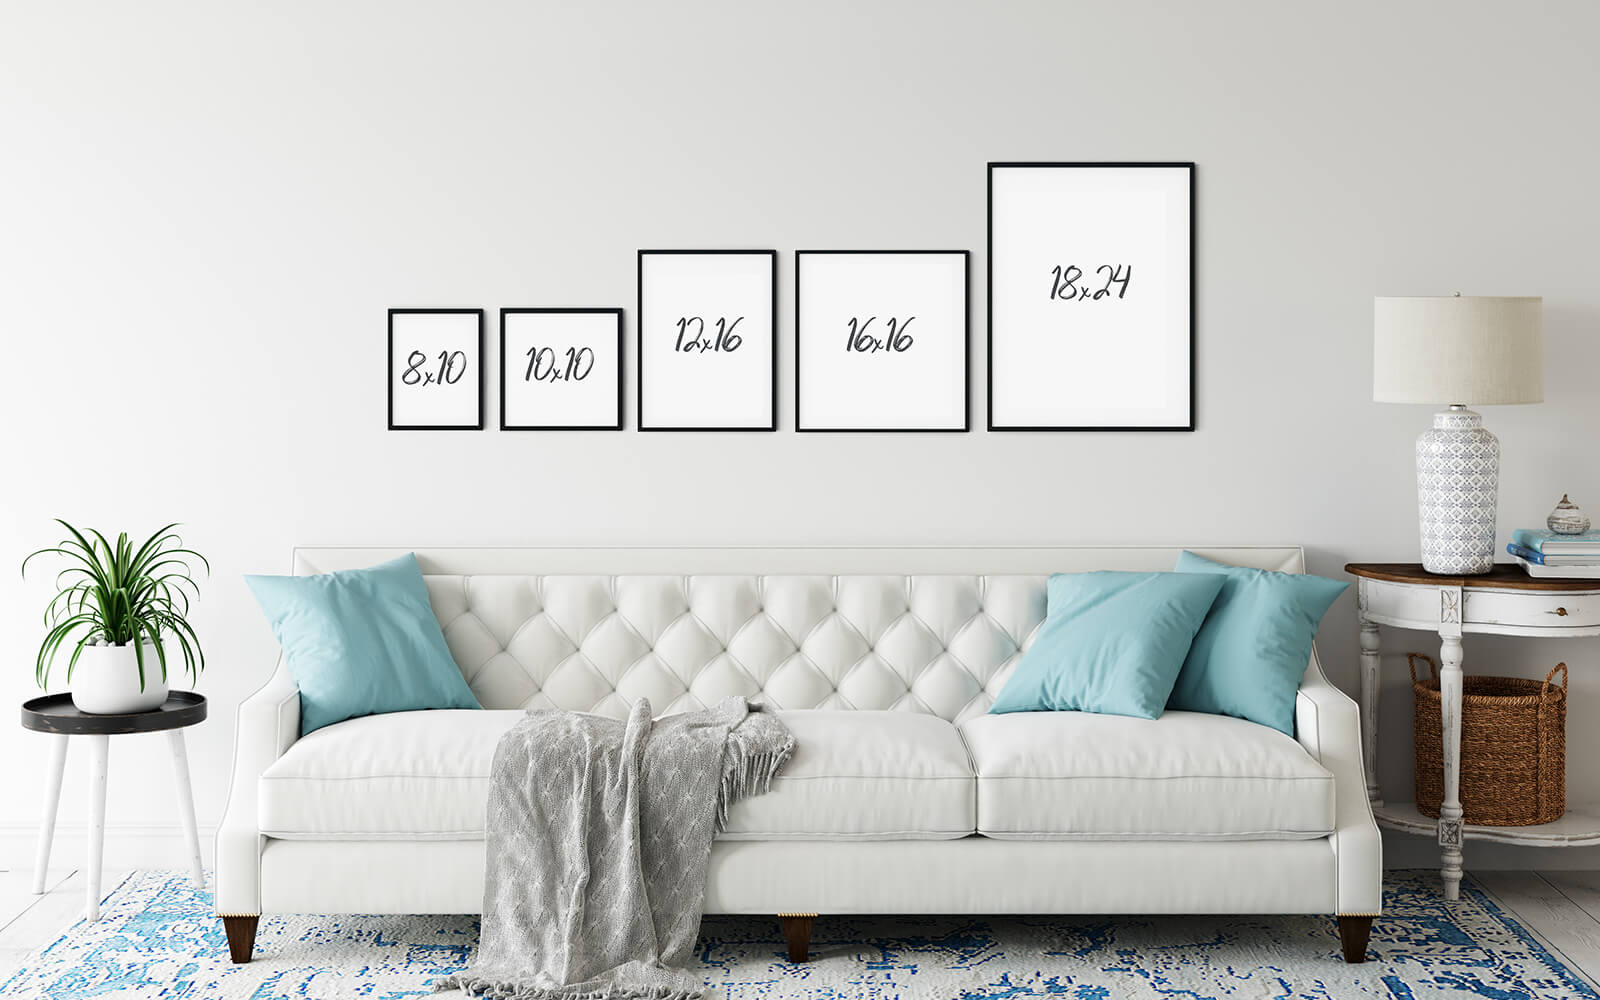 Print Sizes Above a Couch Visual Size Guide